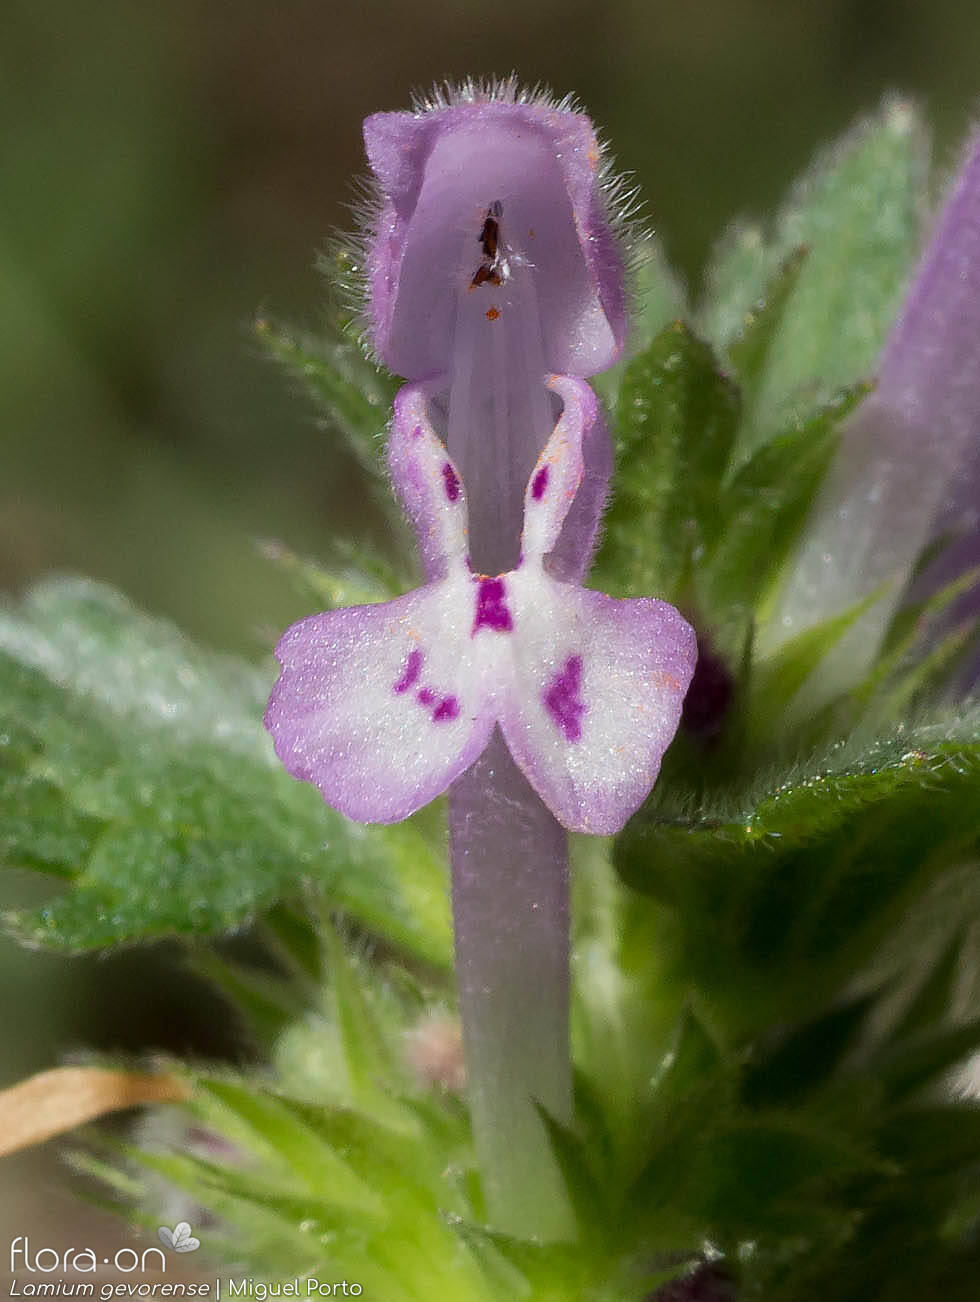 Lamium gevorense - Flor (close-up) | Miguel Porto; CC BY-NC 4.0